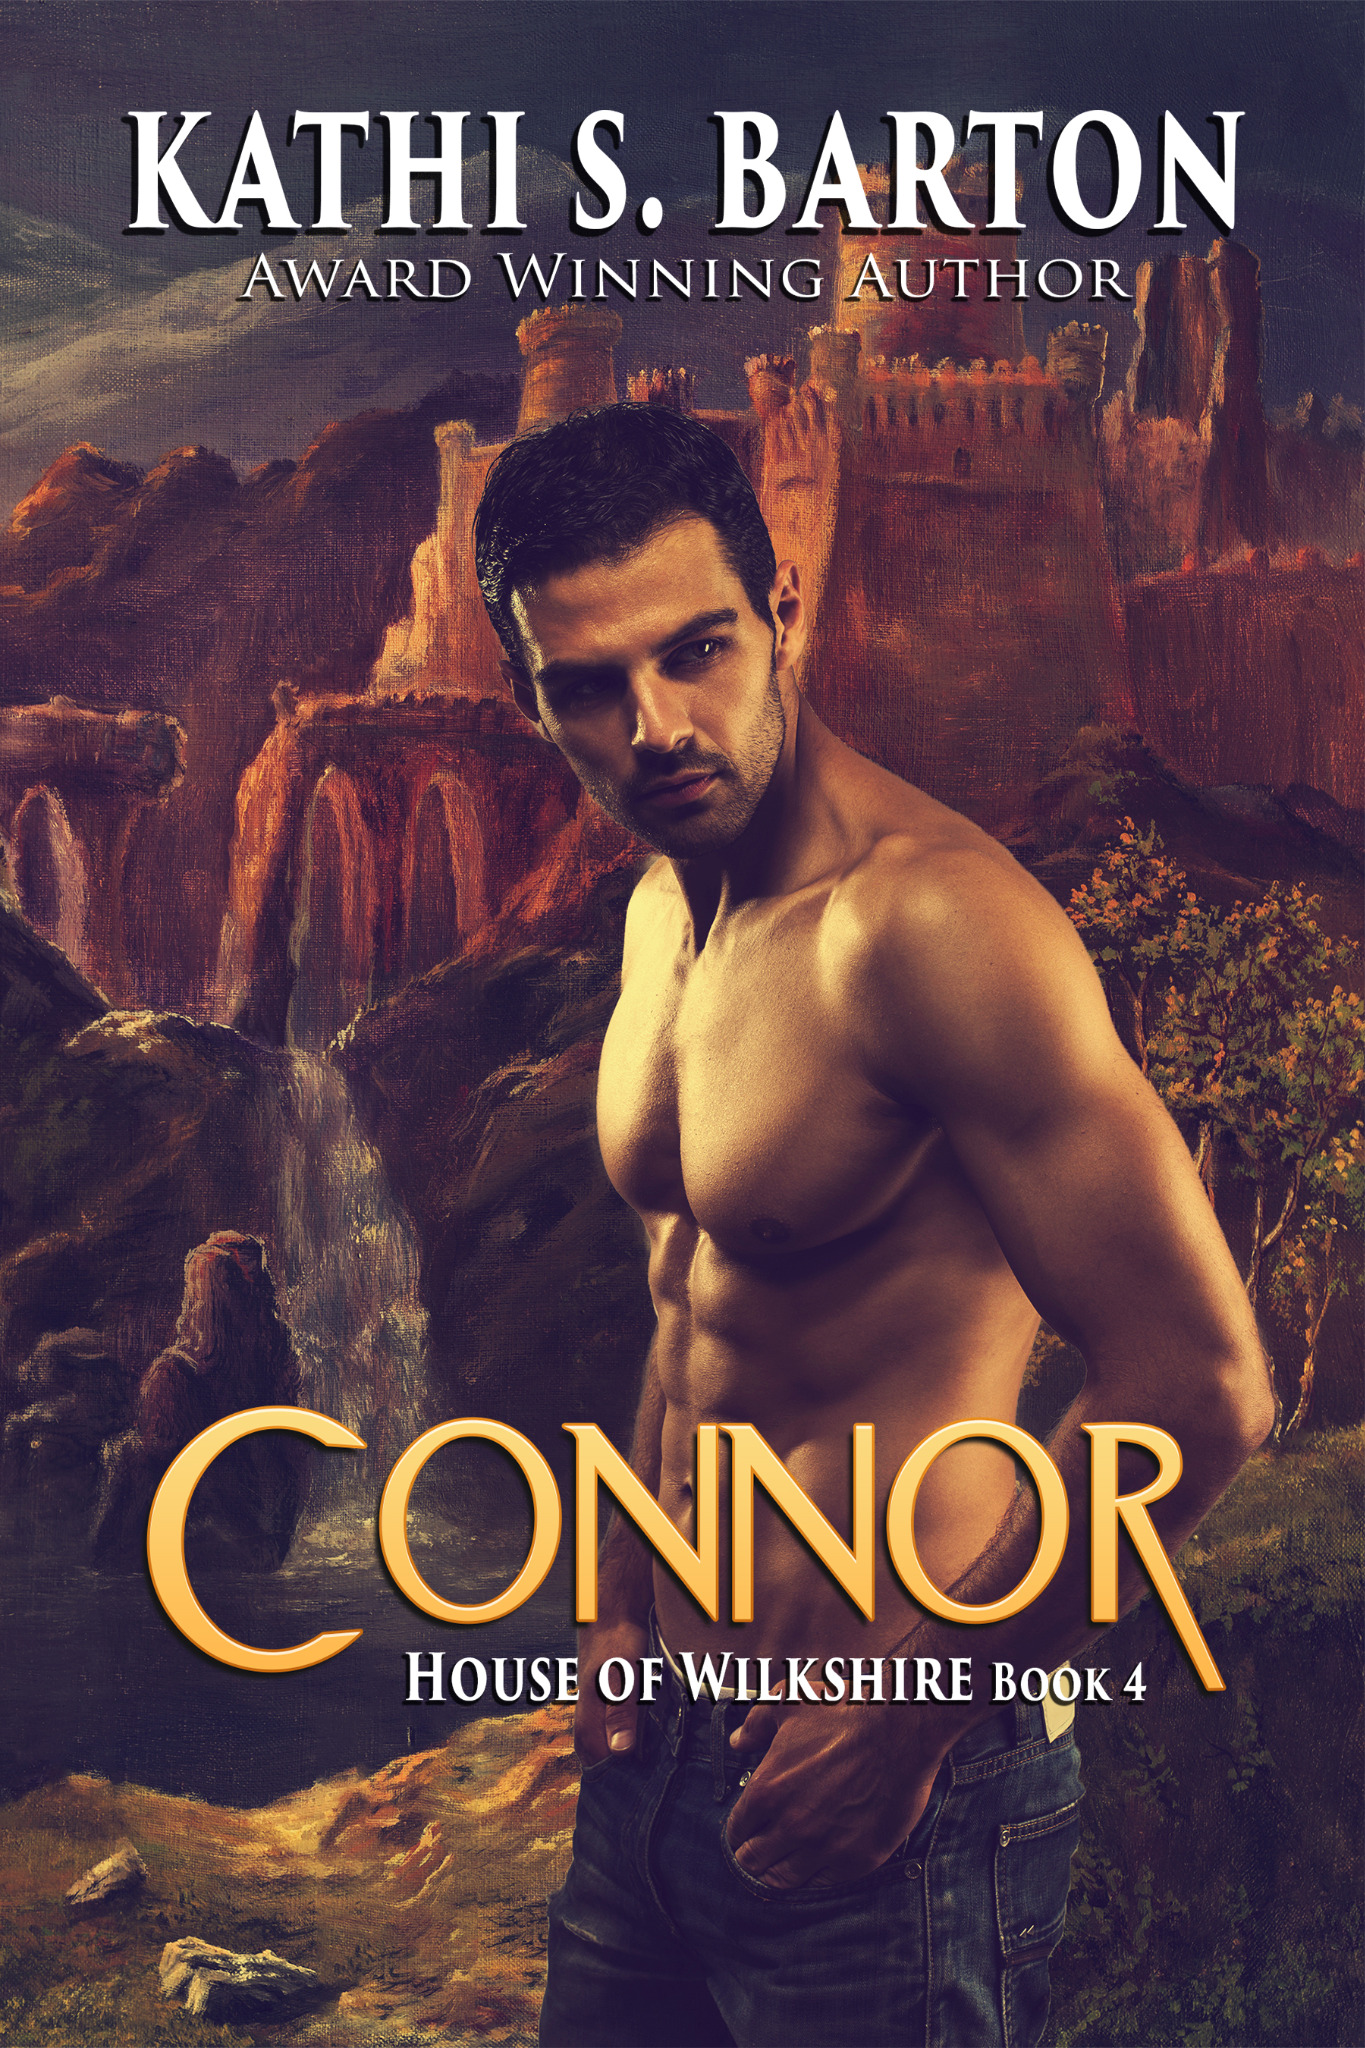 Connor - House of Wilkshire Book 4